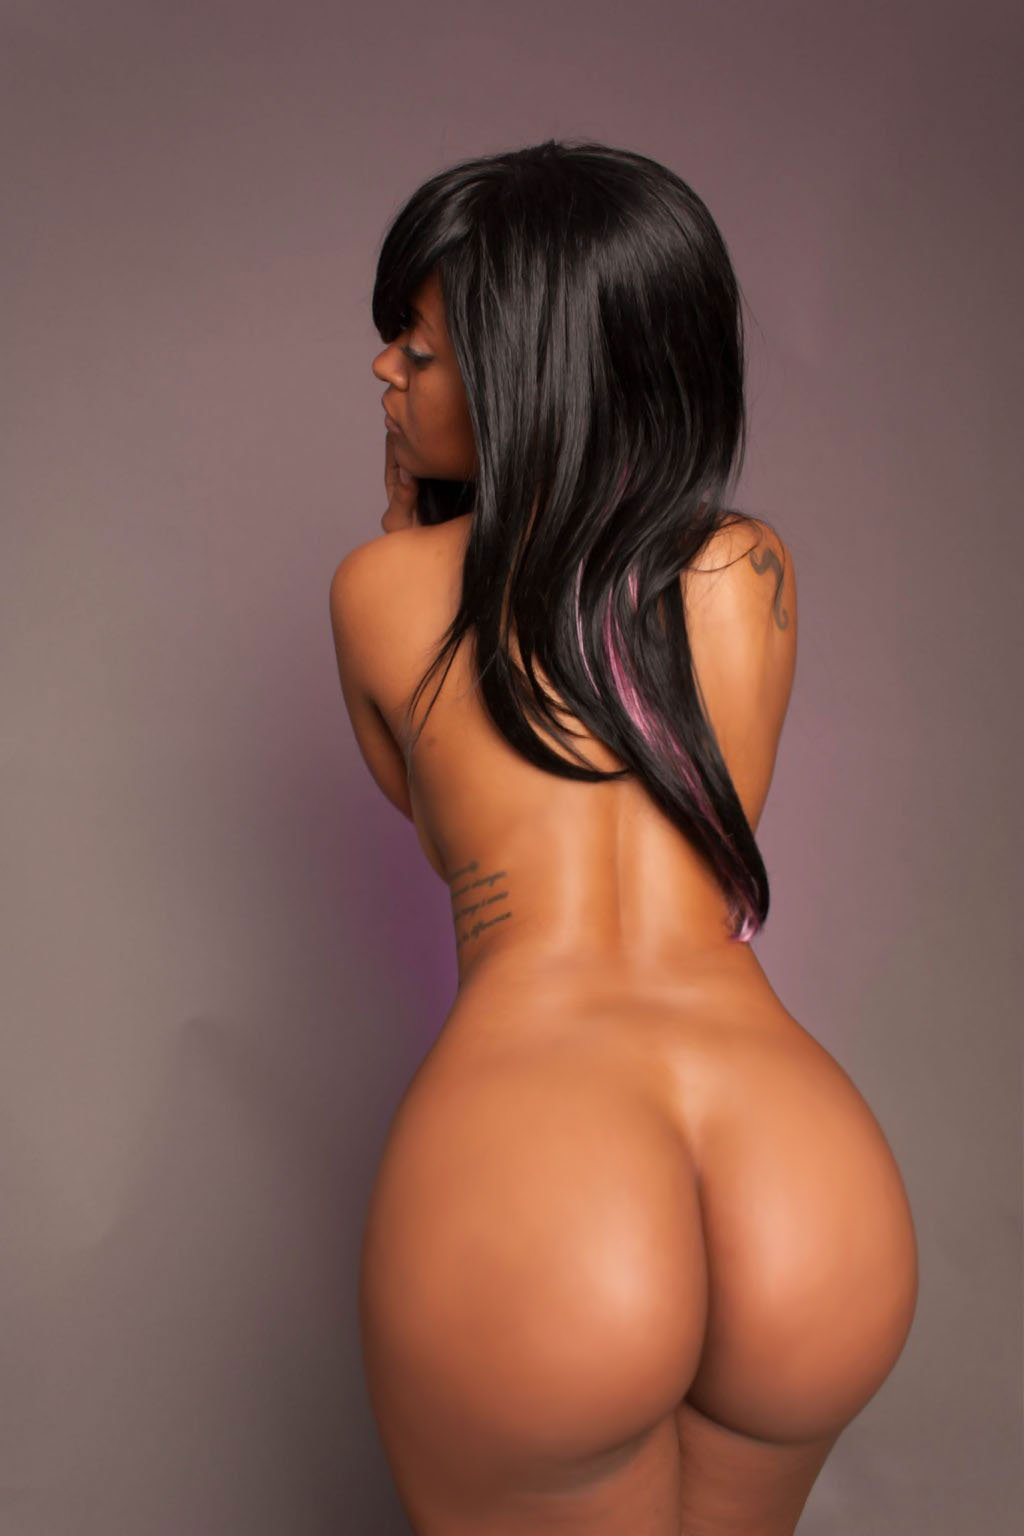 Big naked booty sexy girls